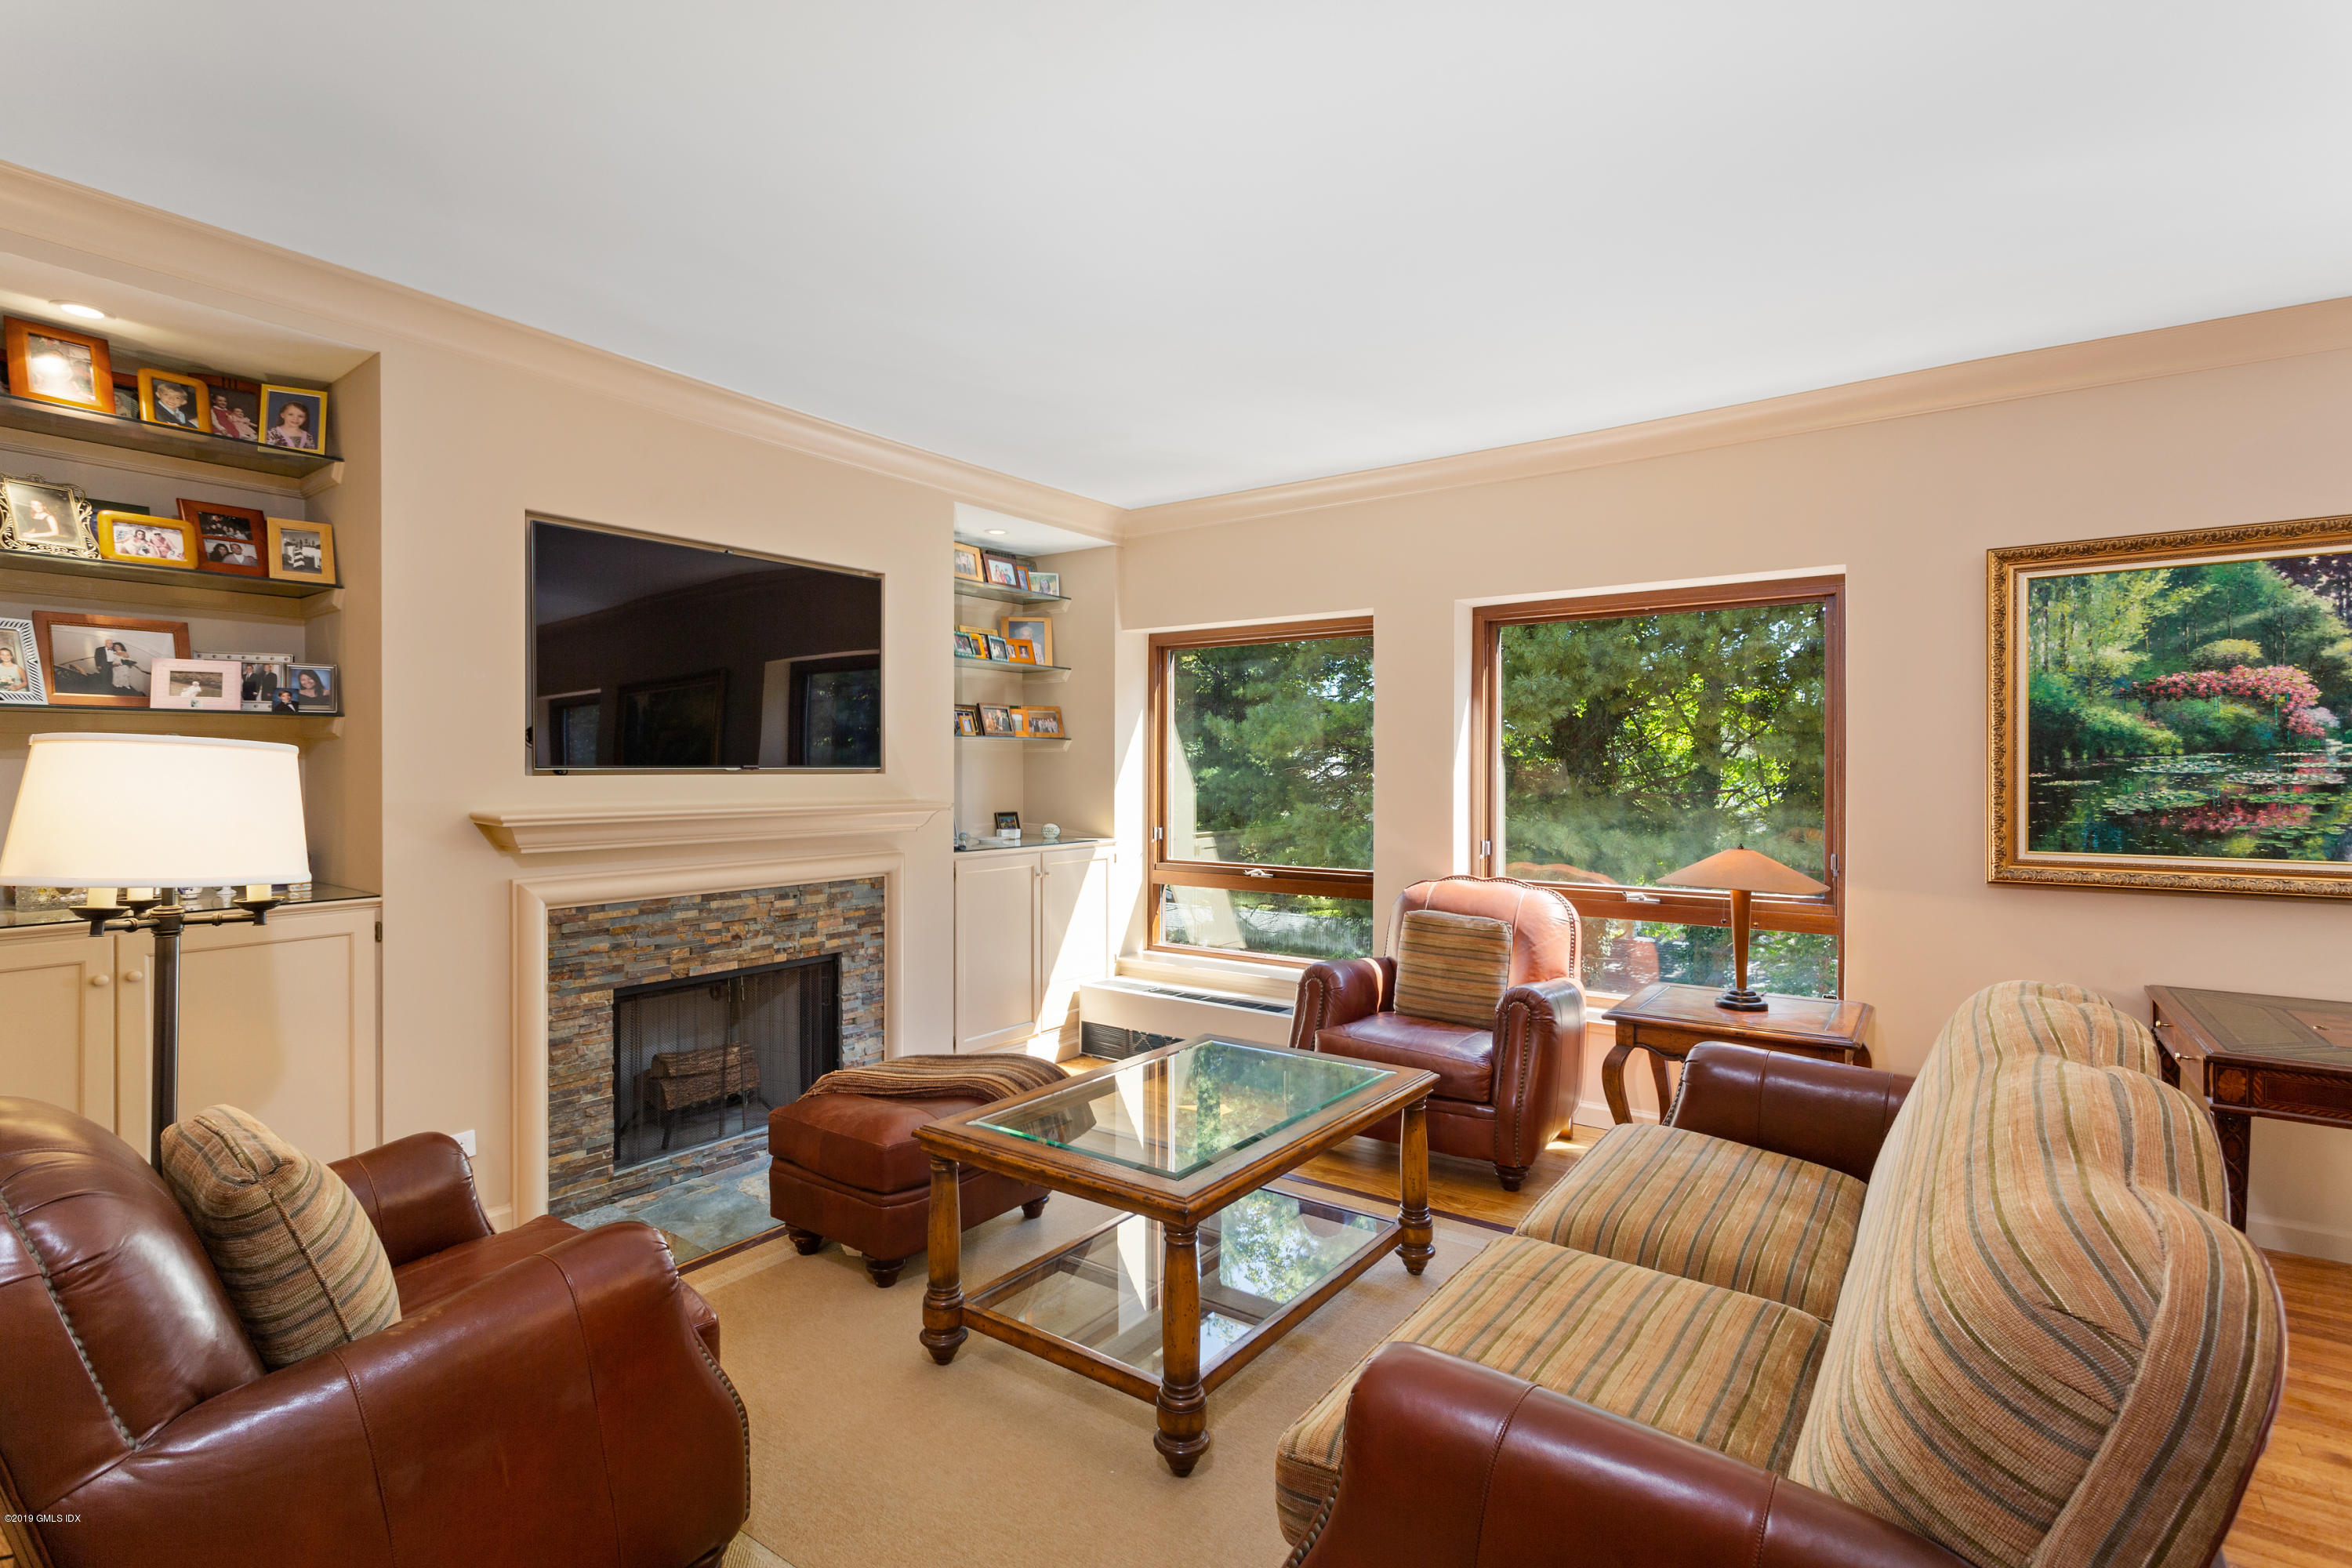 1 Milbank Avenue,Greenwich,Connecticut 06830,2 Bedrooms Bedrooms,2 BathroomsBathrooms,Condominium,Milbank,107930